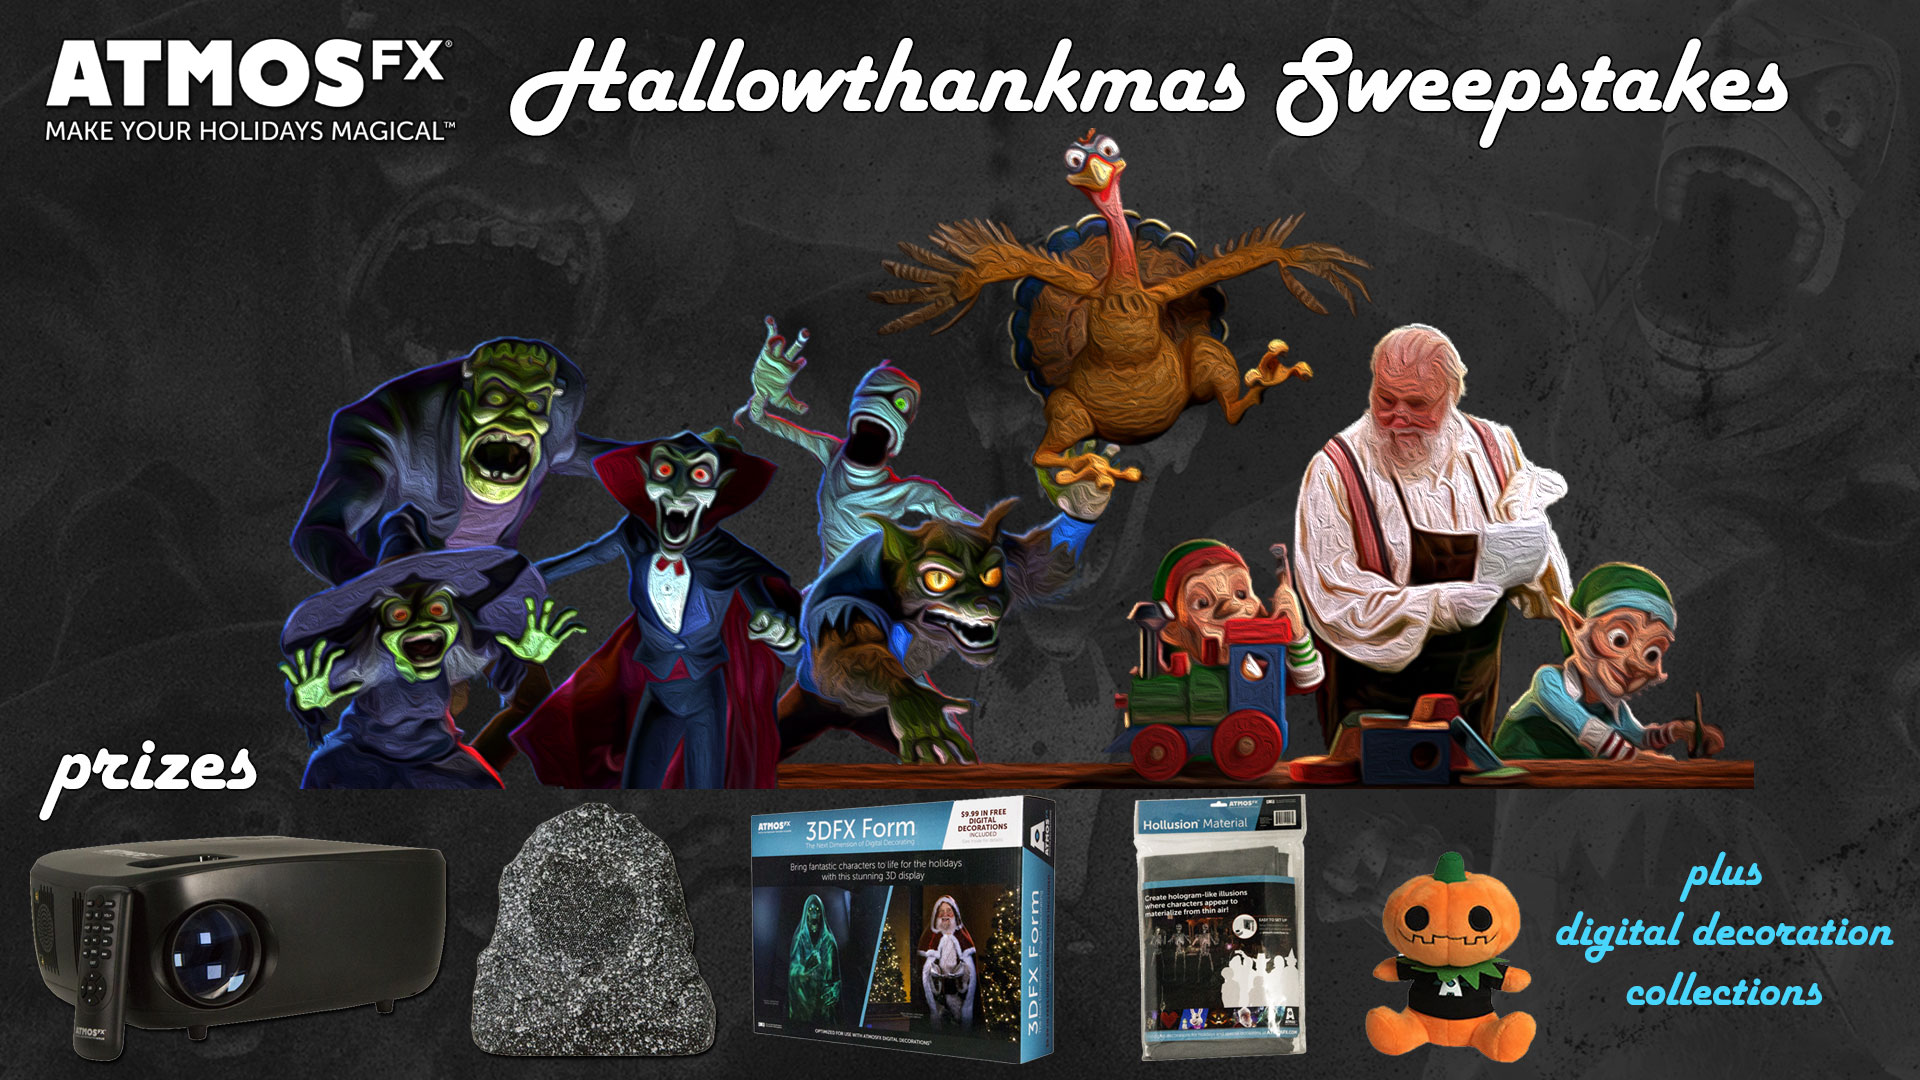 AtmosFX Hallowthankmas Sweepstakes - Win a Holiday Prize Pack - 16 Winners!  some exclusions Giveaway Image